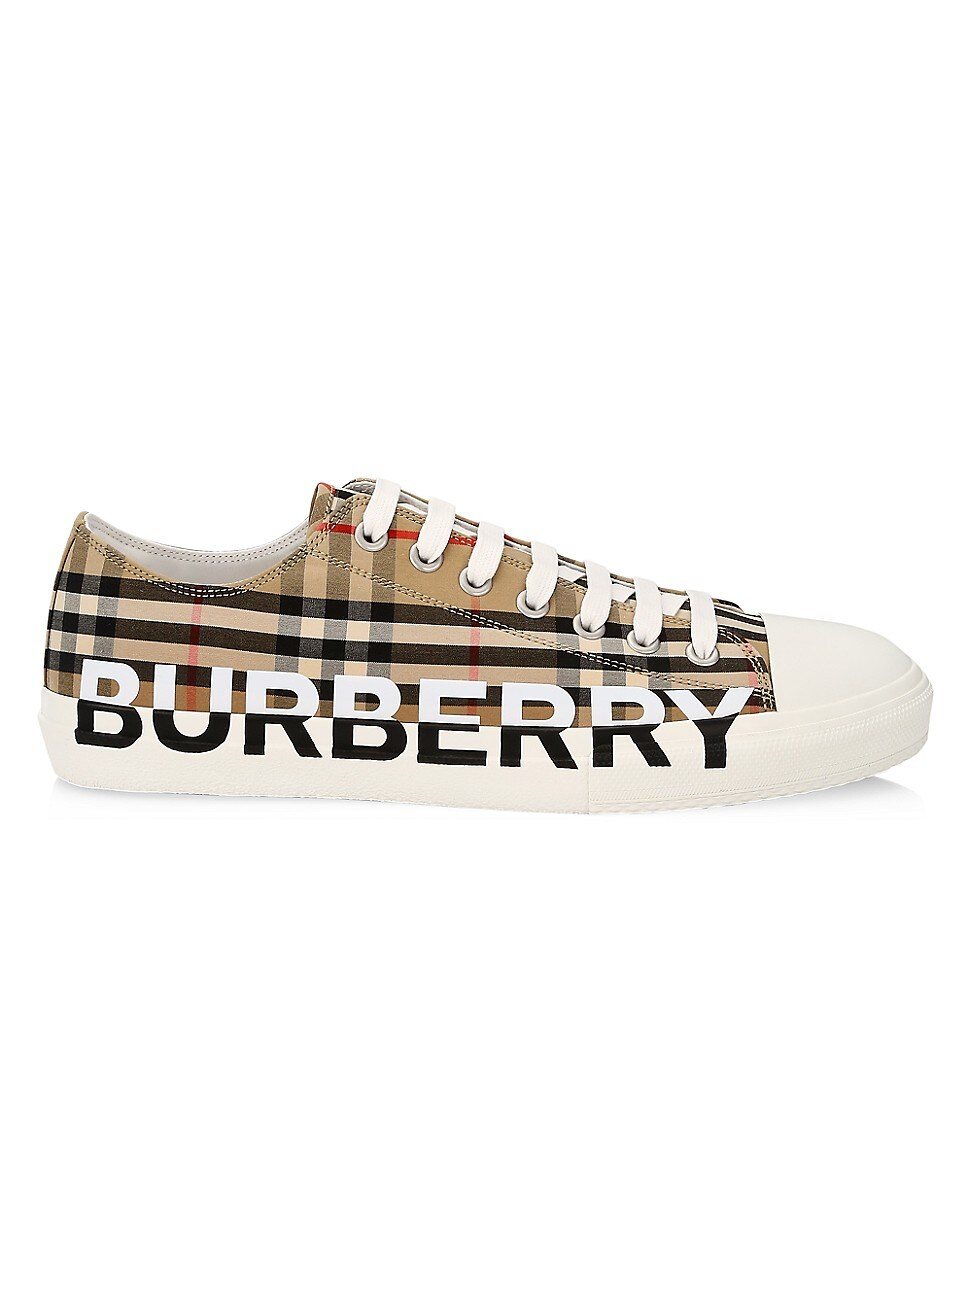 Burberry MEN'S LARKHALL VINTAGE CHECK LOGO LOW-TOP SNEAKERS